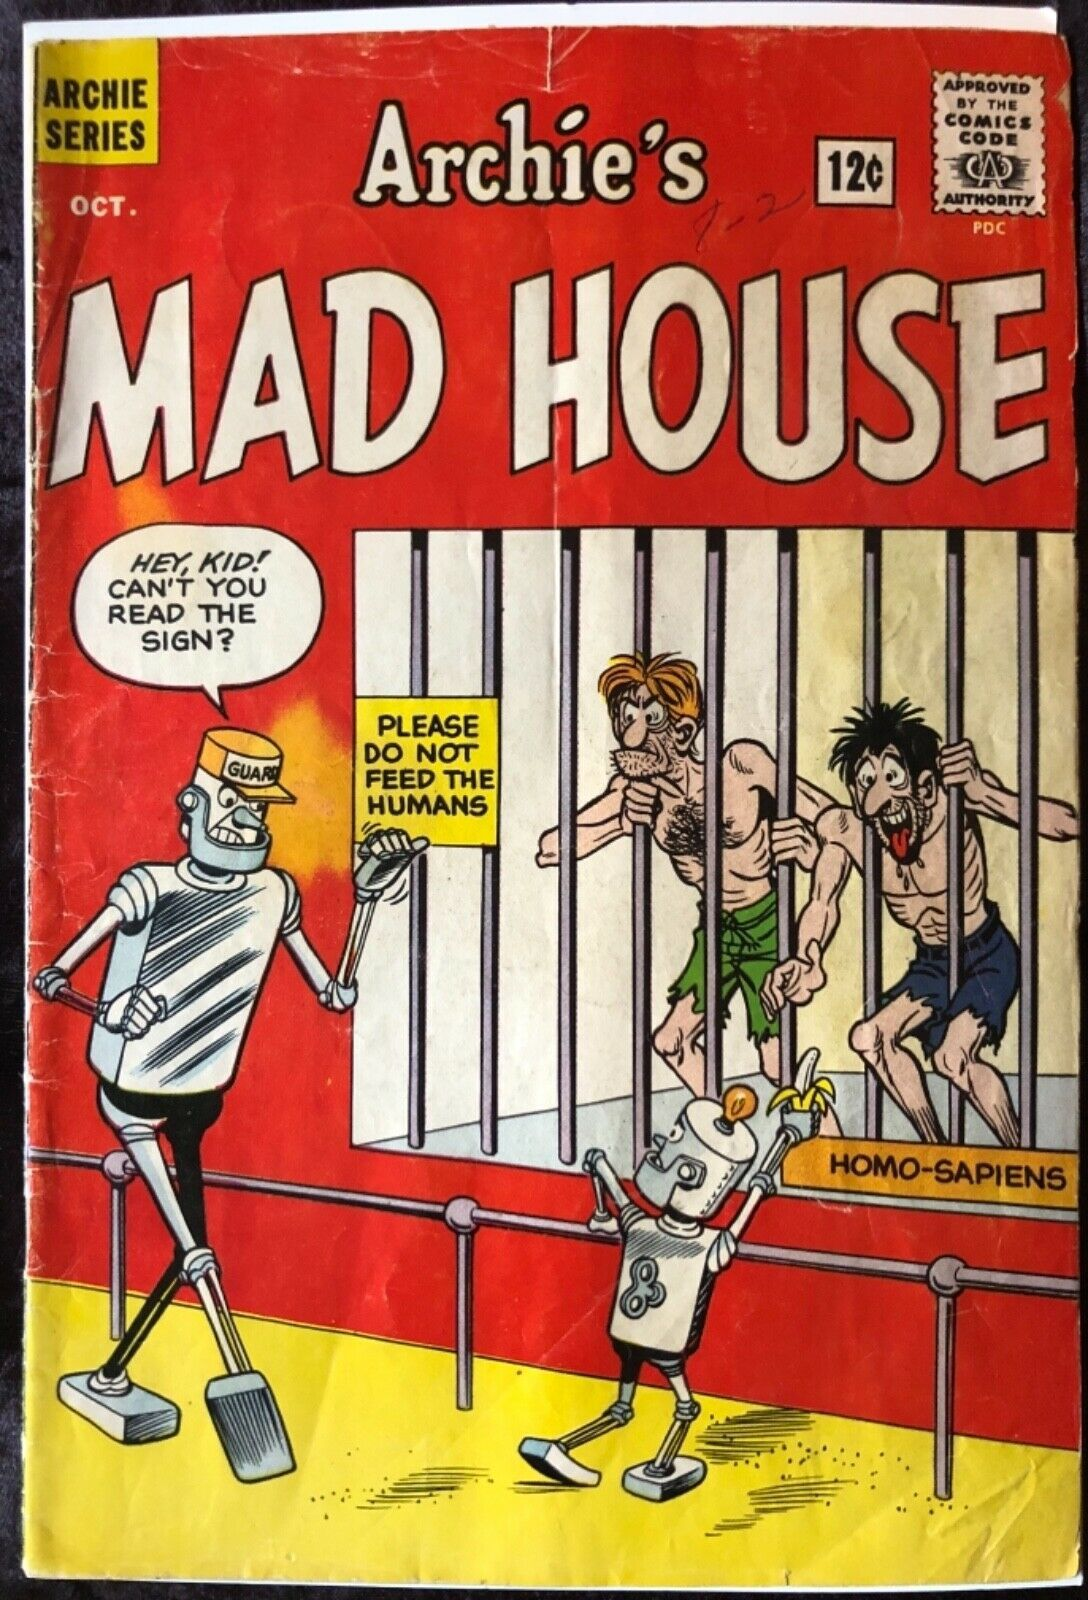 Archie Comics Archie's Madhouse 22 - First Appearance of Sabrina - Approx 3.5